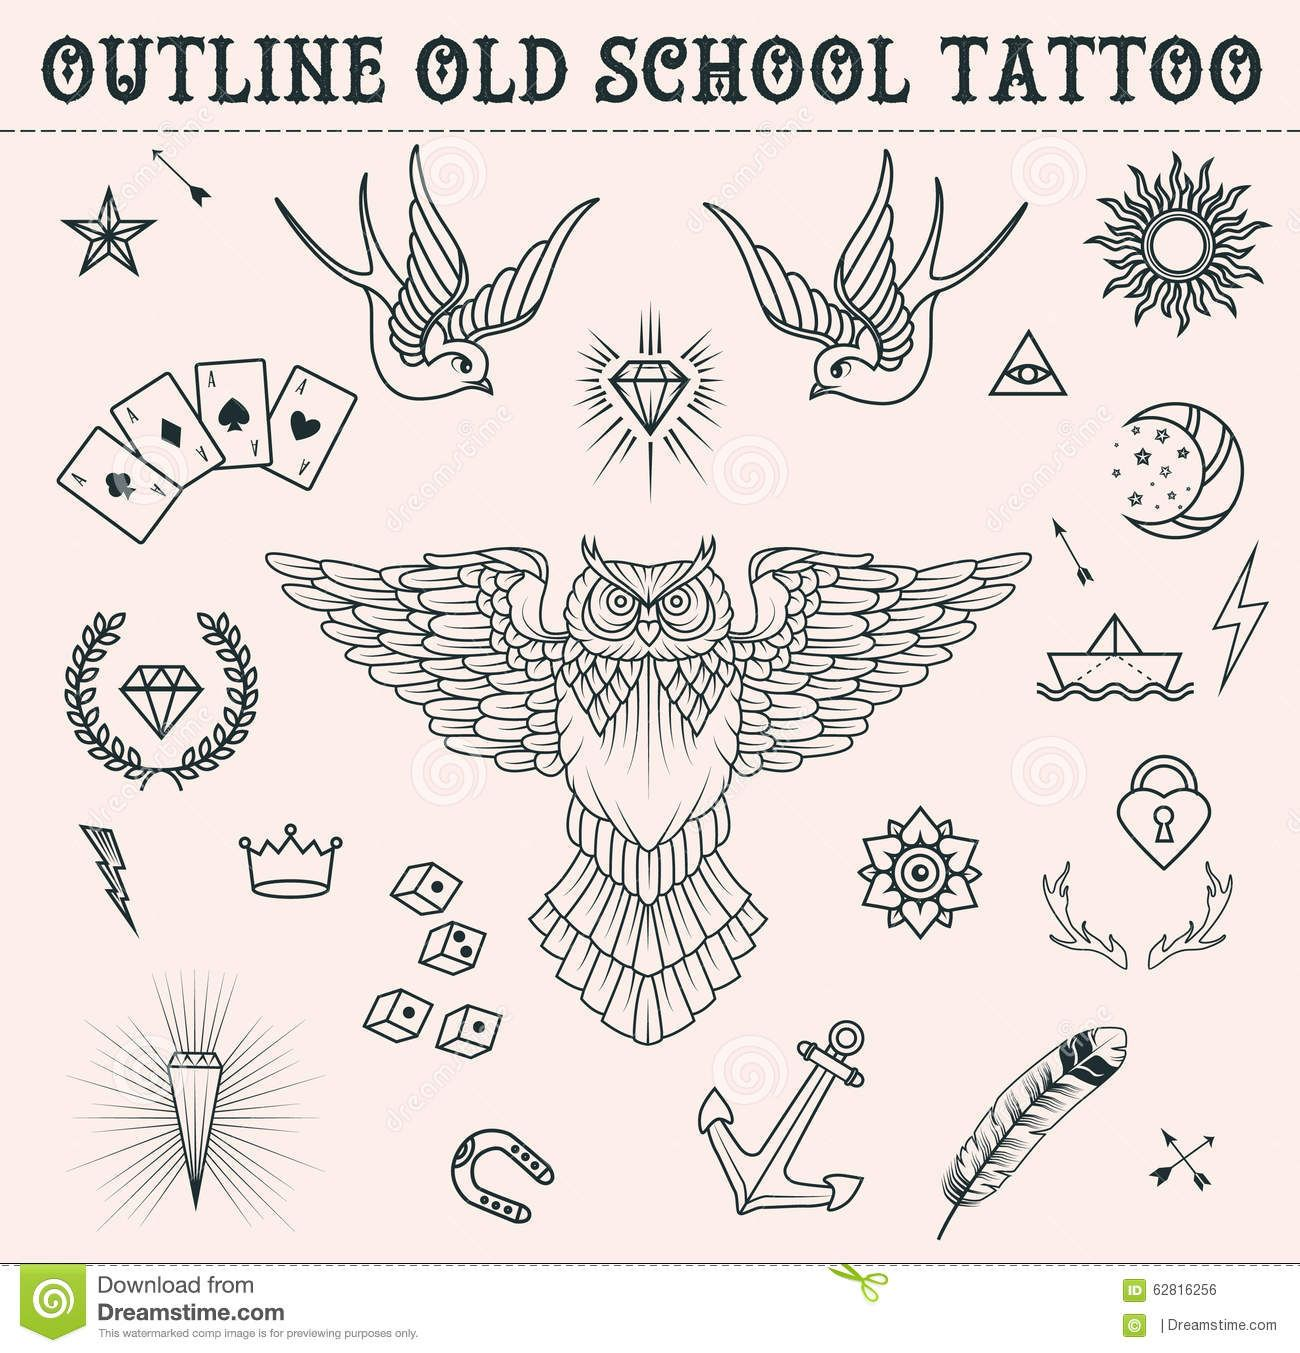 Tattoo Outlines Banner: Tattoo Banner Outline - Google Search …